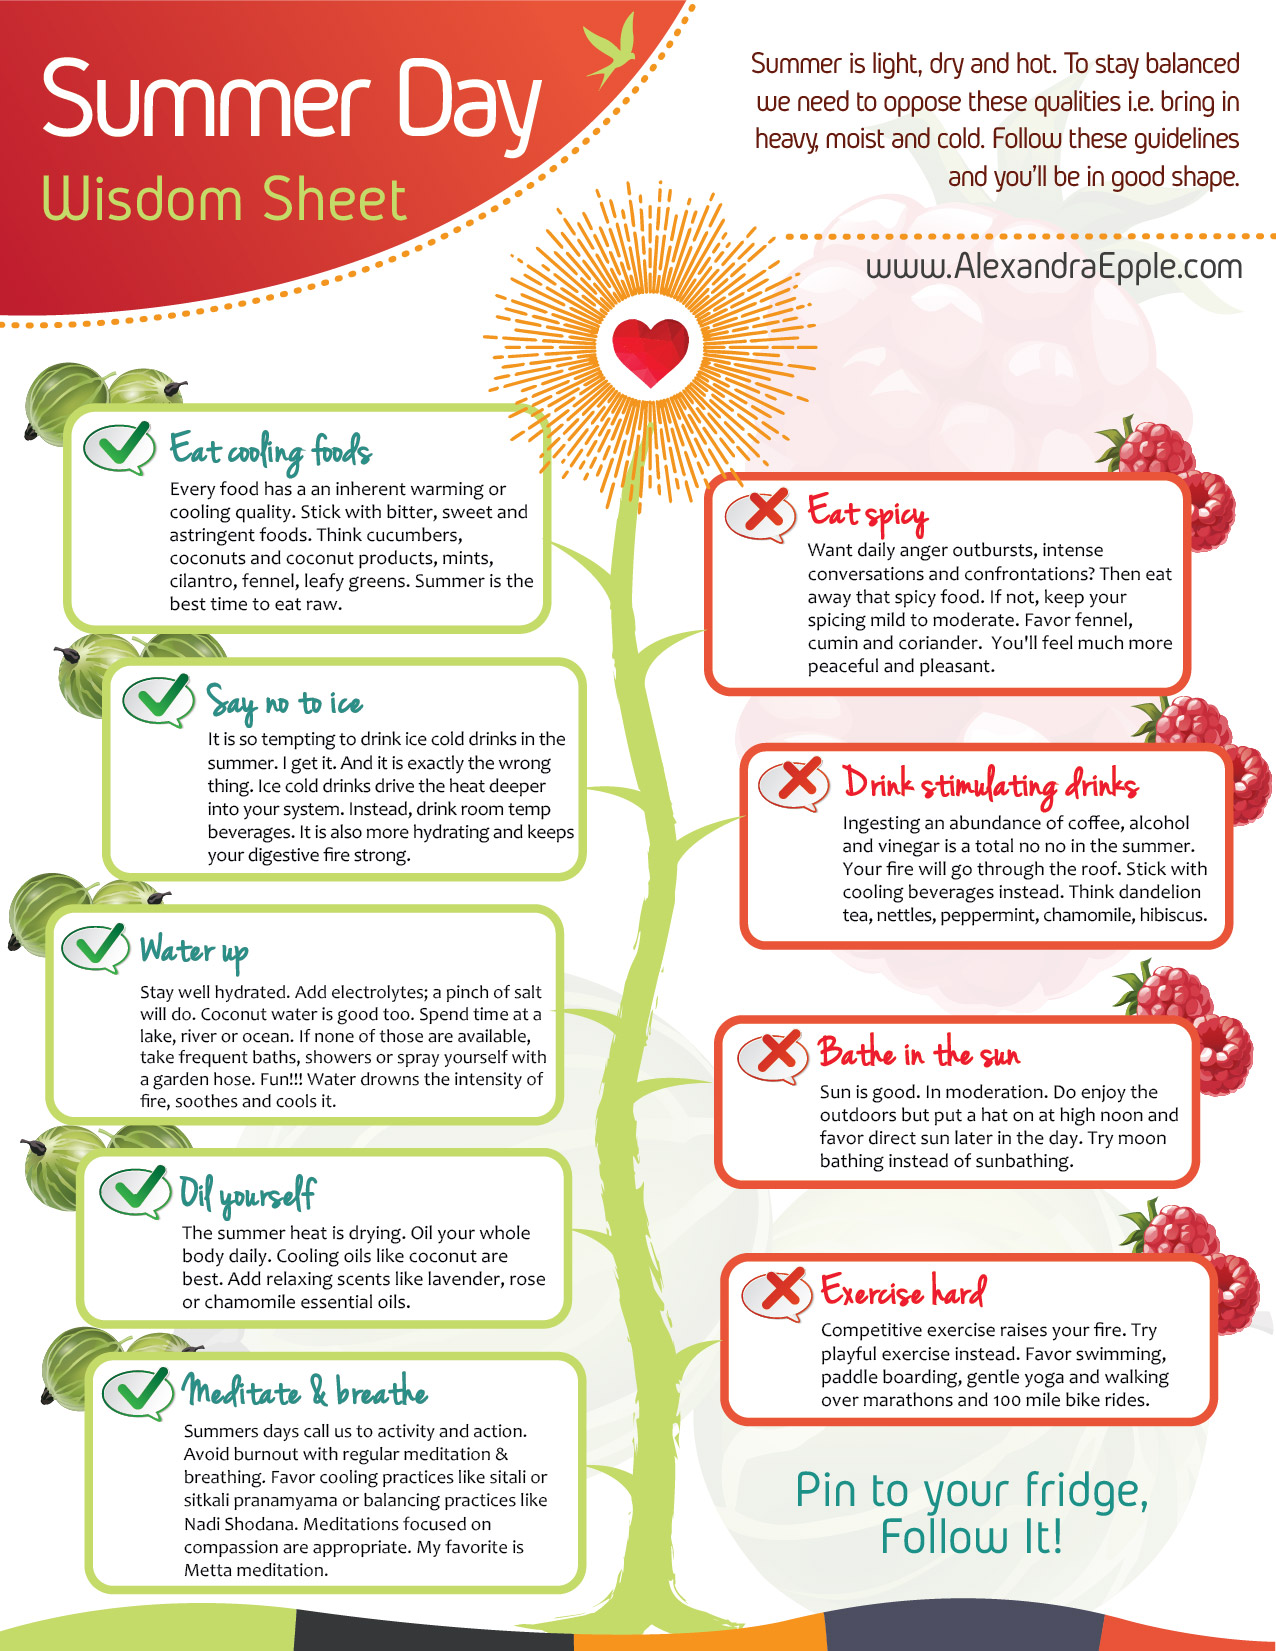 DOWNLOAD the Summer Wisdom Sheet here